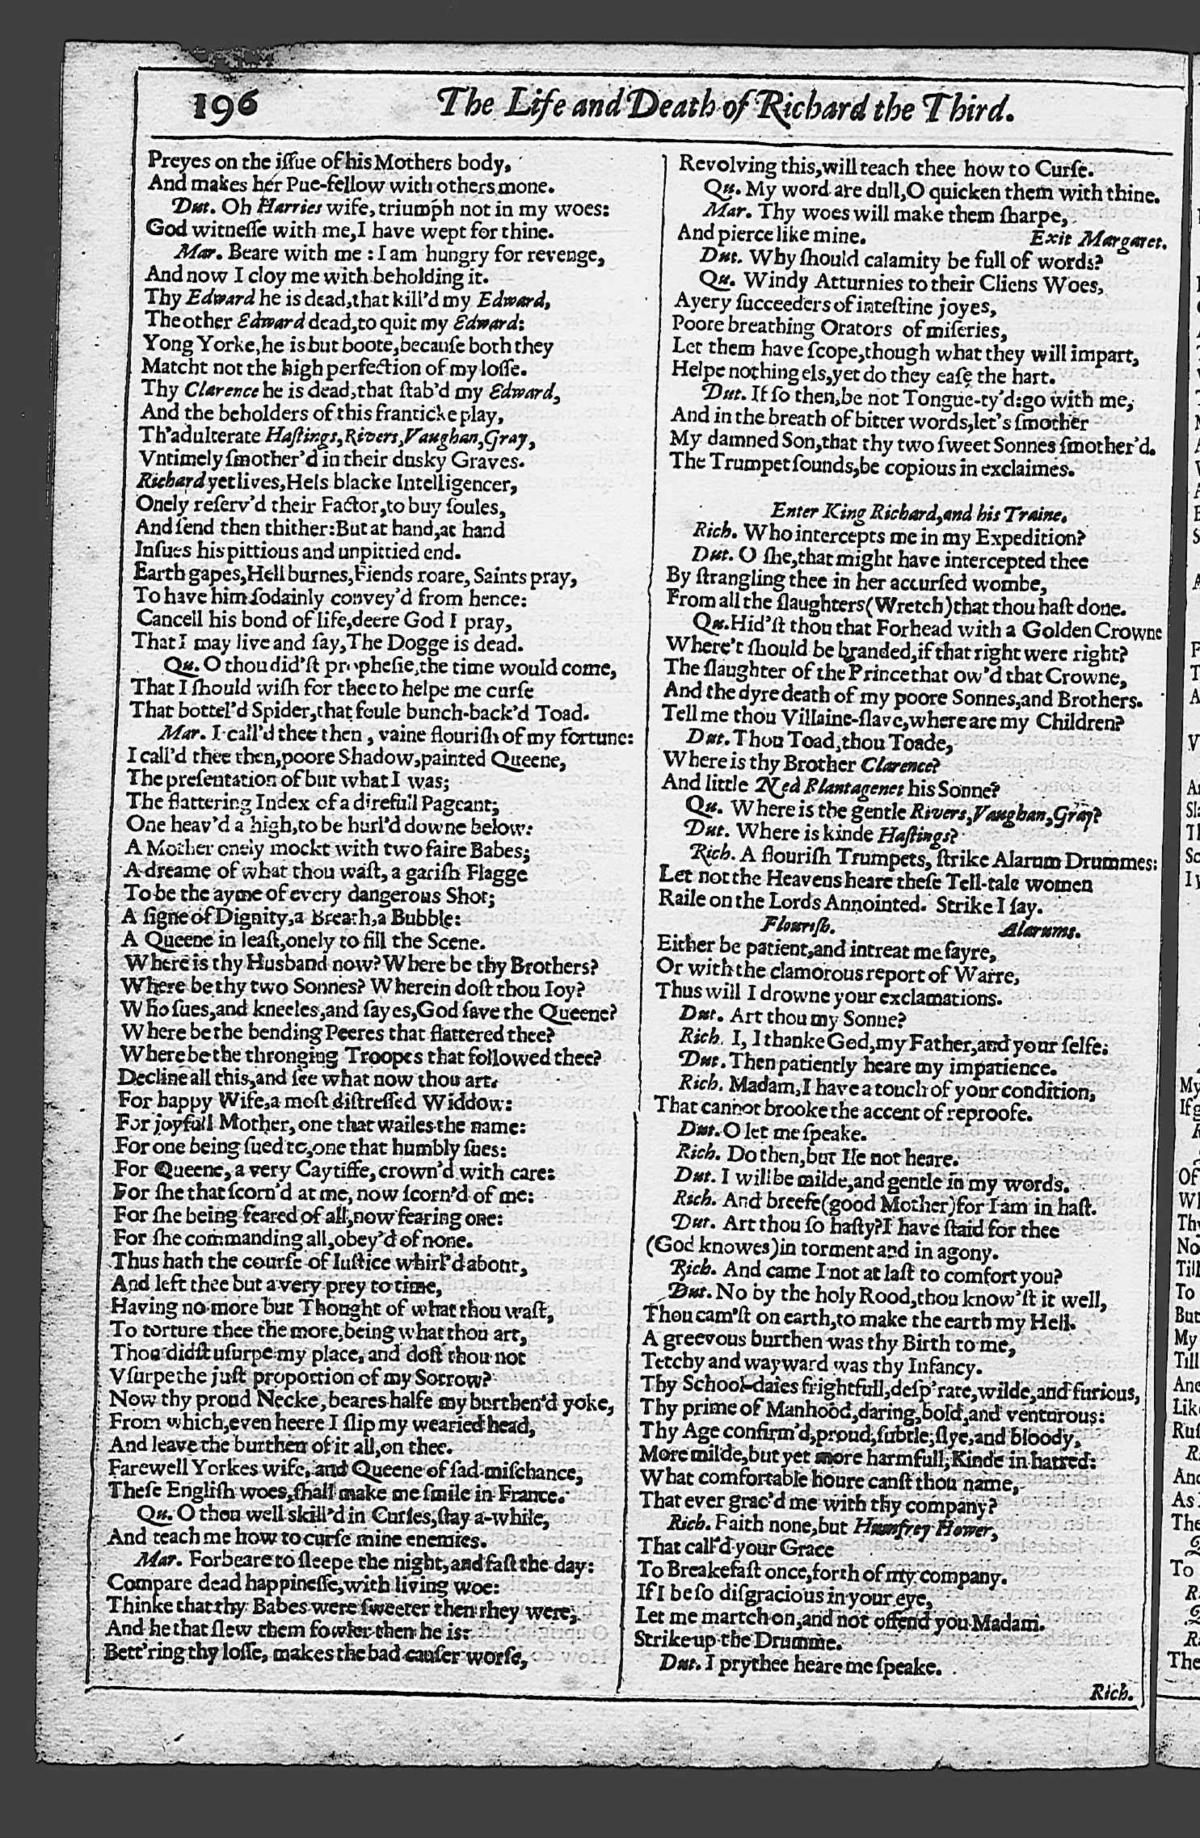 Image of Second Folio (New South Wales), page 550